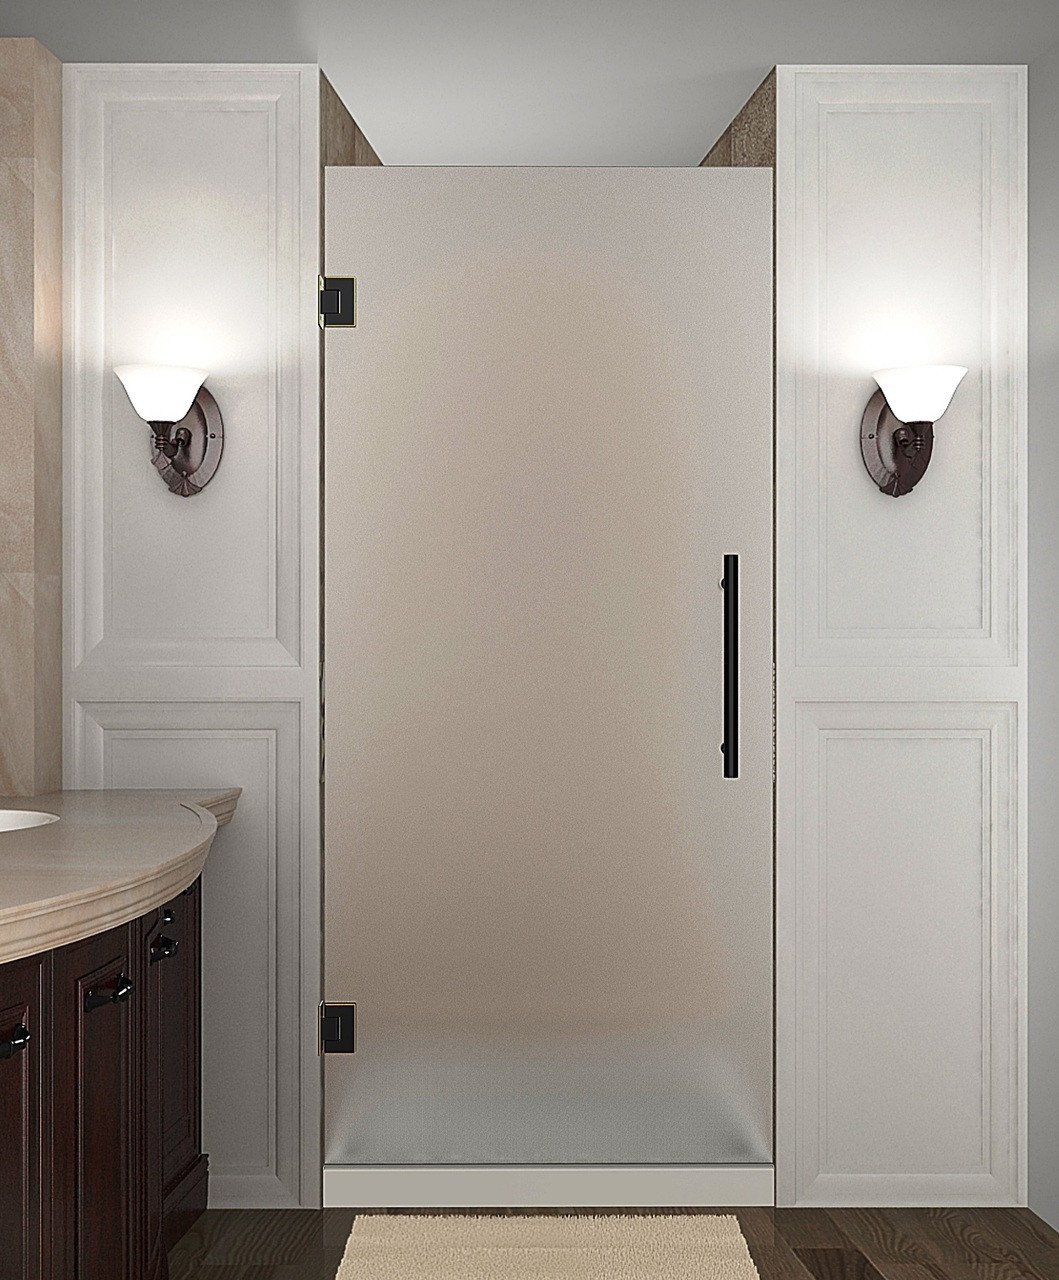 "Aston SDR995F-ORB-35-10 Oil Rubbed Bronze 35 x 72"" Completely Frameless Frosted Glass Shower Door"